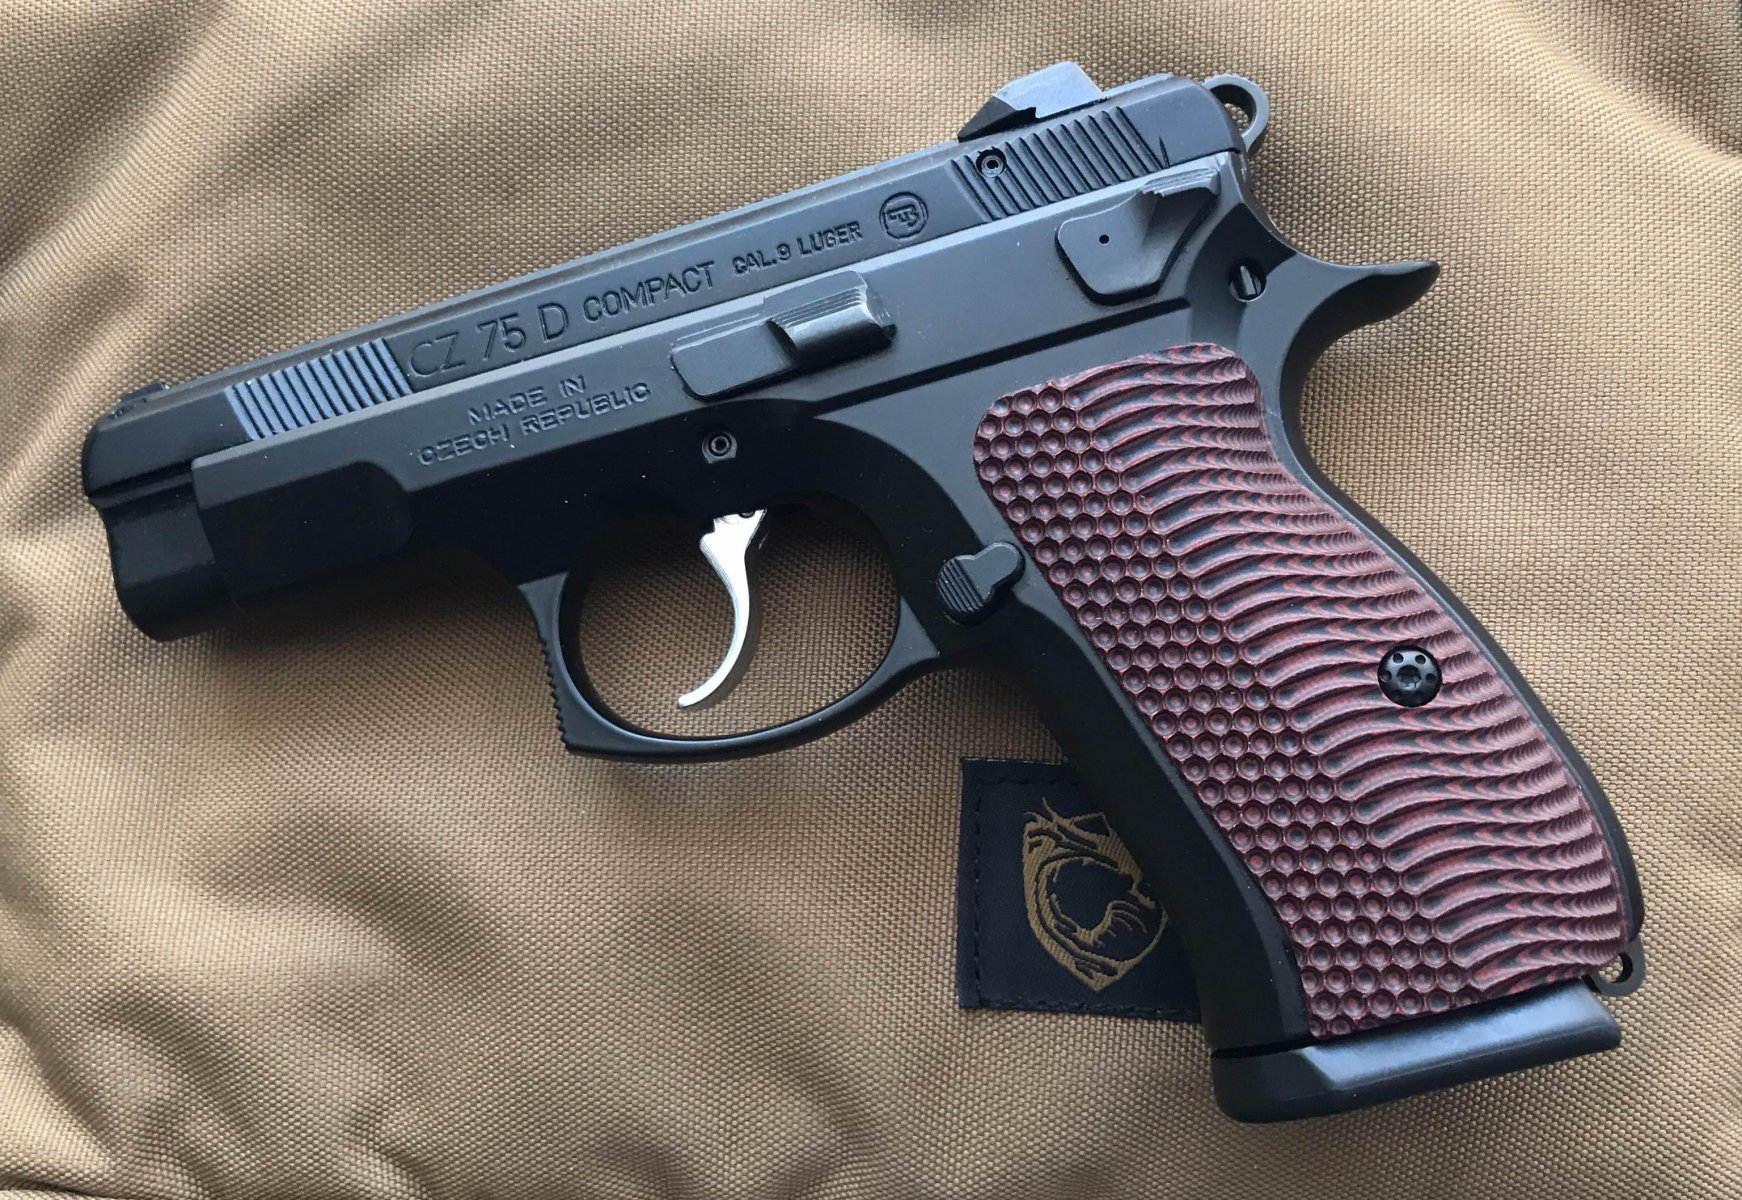 CZ 75D PCR Compact back from the Gun Shop